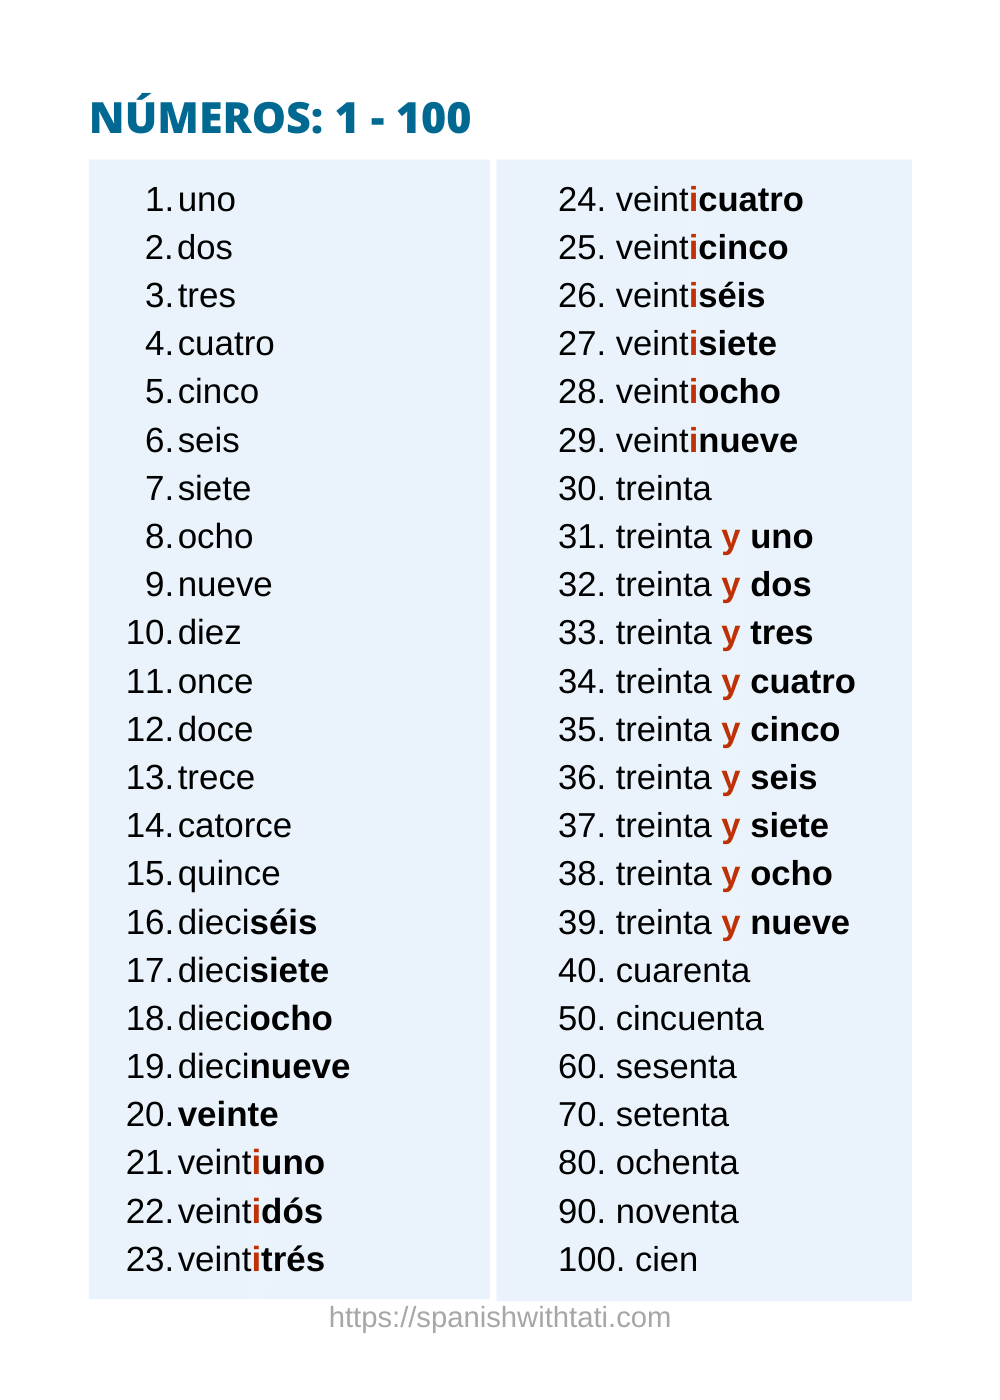 numbers in spanish 1 - 100